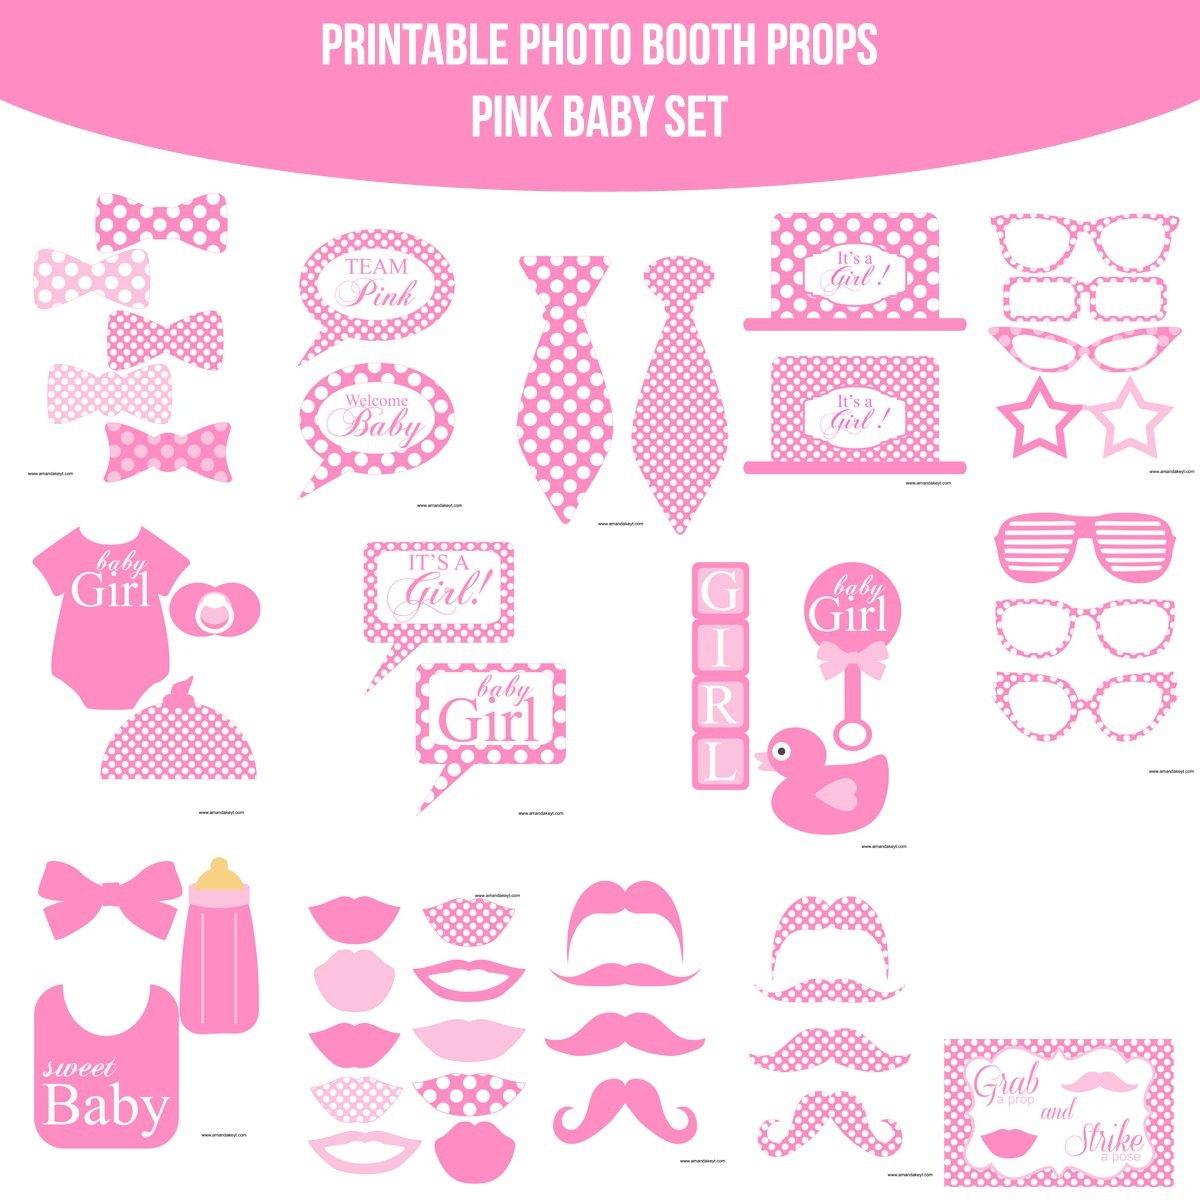 Instant Download Baby Pink Dots Printable Photo Booth Prop Set - Free Printable Baby Shower Photo Booth Props